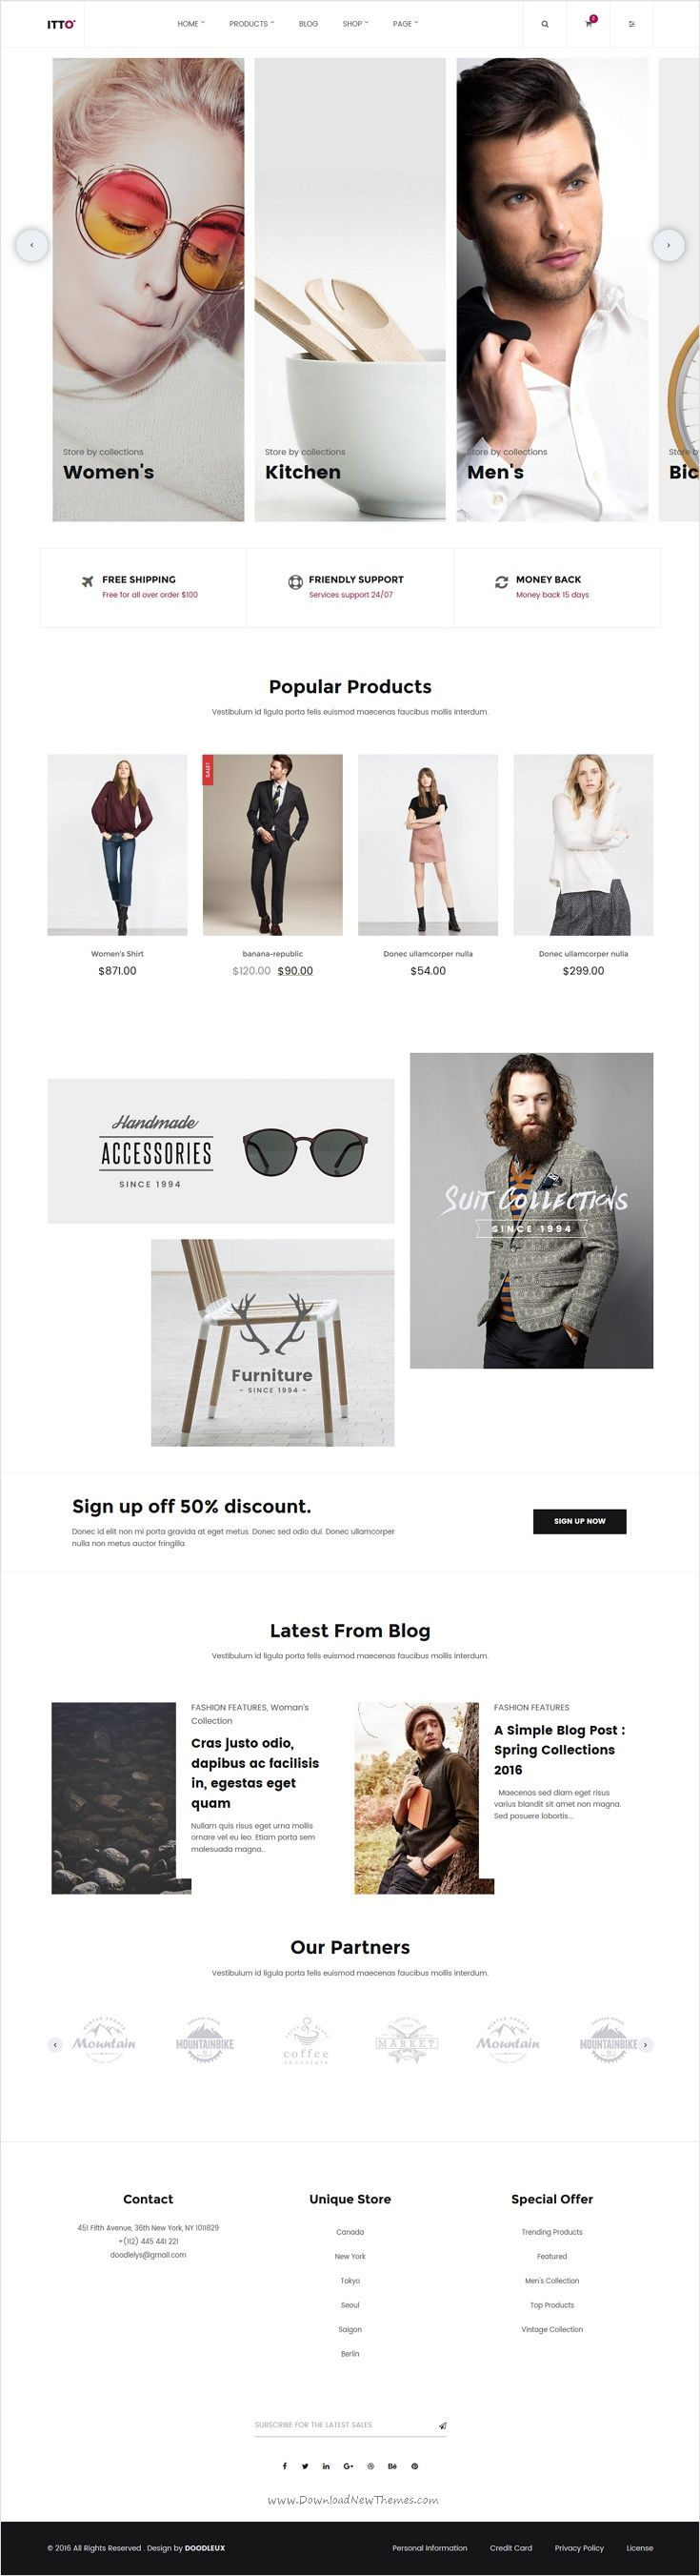 Etto is a clean and unique design #responsive #WordPress #eCommerce theme #webdesign using latest trendy material design for online shopping stores website with 4 different homepage layouts download now➩ https://themeforest.net/item/itto-multistore-ecommerce-wordpress-theme/17931977?ref=Datasata